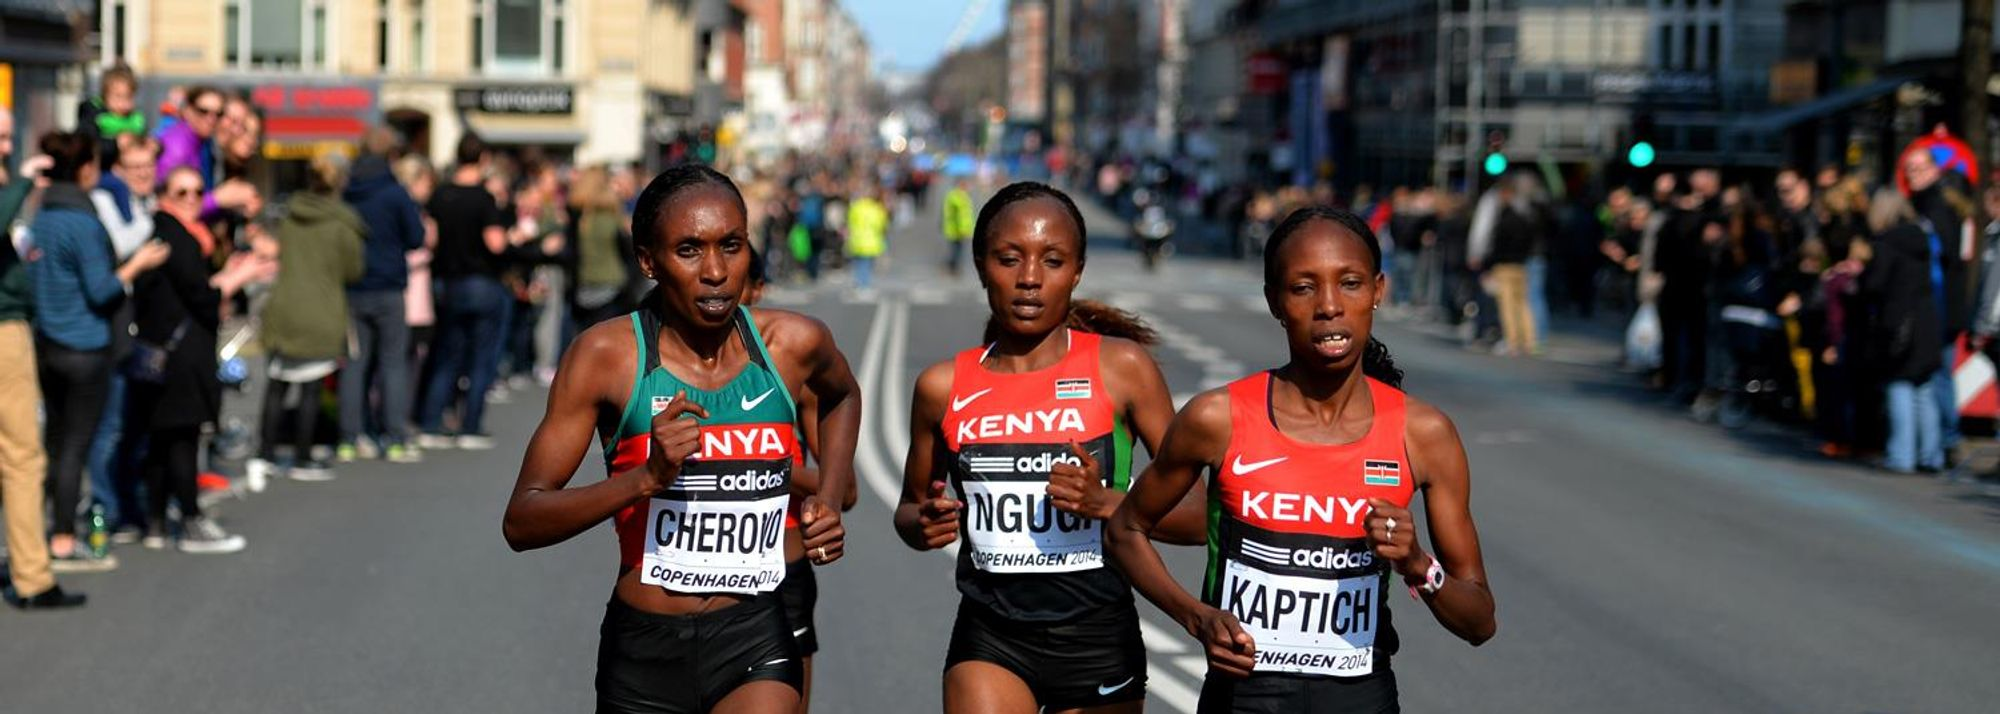 The image of all five of the Kenyan team running in a line at the front of the IAAF World Half Marathon Championships women's race, eyes front, arms pumping in unison, will remain in the memory of all who witnessed it on what was, in all senses, a glorious day for running in Copenhagen on Saturday (29).